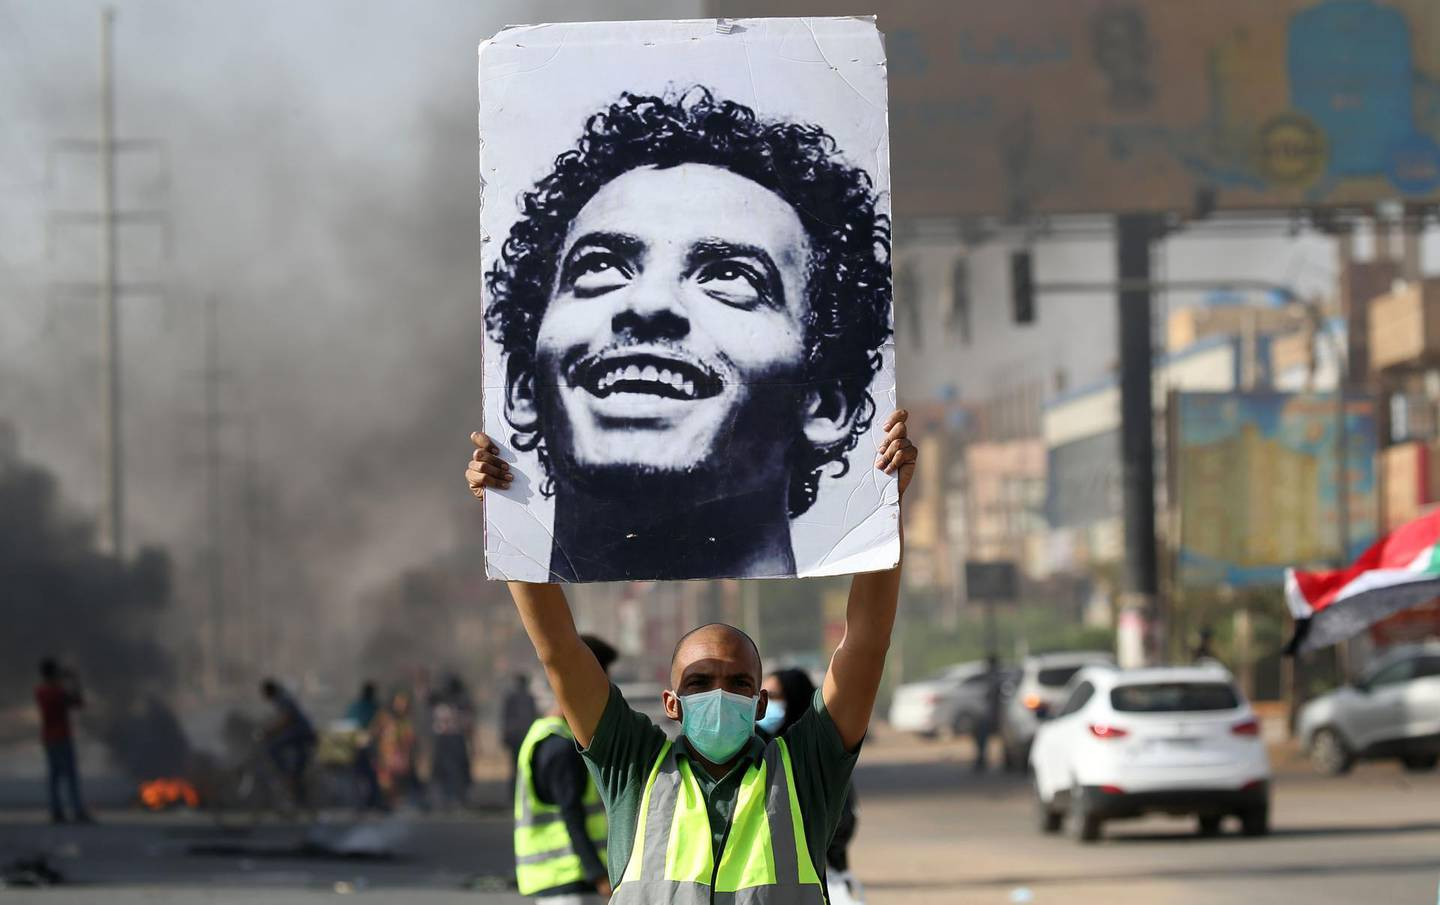 A mask-clad man holds a picture of a Abdulsalam Kisha, a Sudanese protester who was killed in a raid on an anti-government sit-in in 2019, during a protest in the Riyadh district in the east of the capital Khartoum on the anniversary of the raid on June 3, 2020. One year after the 25-year-old Abdulsalam's killing in the dispersal of Sudan's main protest camp, his father Kisha is still holding out hope that the killers be brought to justice as he calls for an international probe. The young protester was killed along with scores others when armed men in military fatigues stormed the sprawling encampment outside Khartoum's army headquarters on June 3 last year. / AFP / ASHRAF SHAZLY